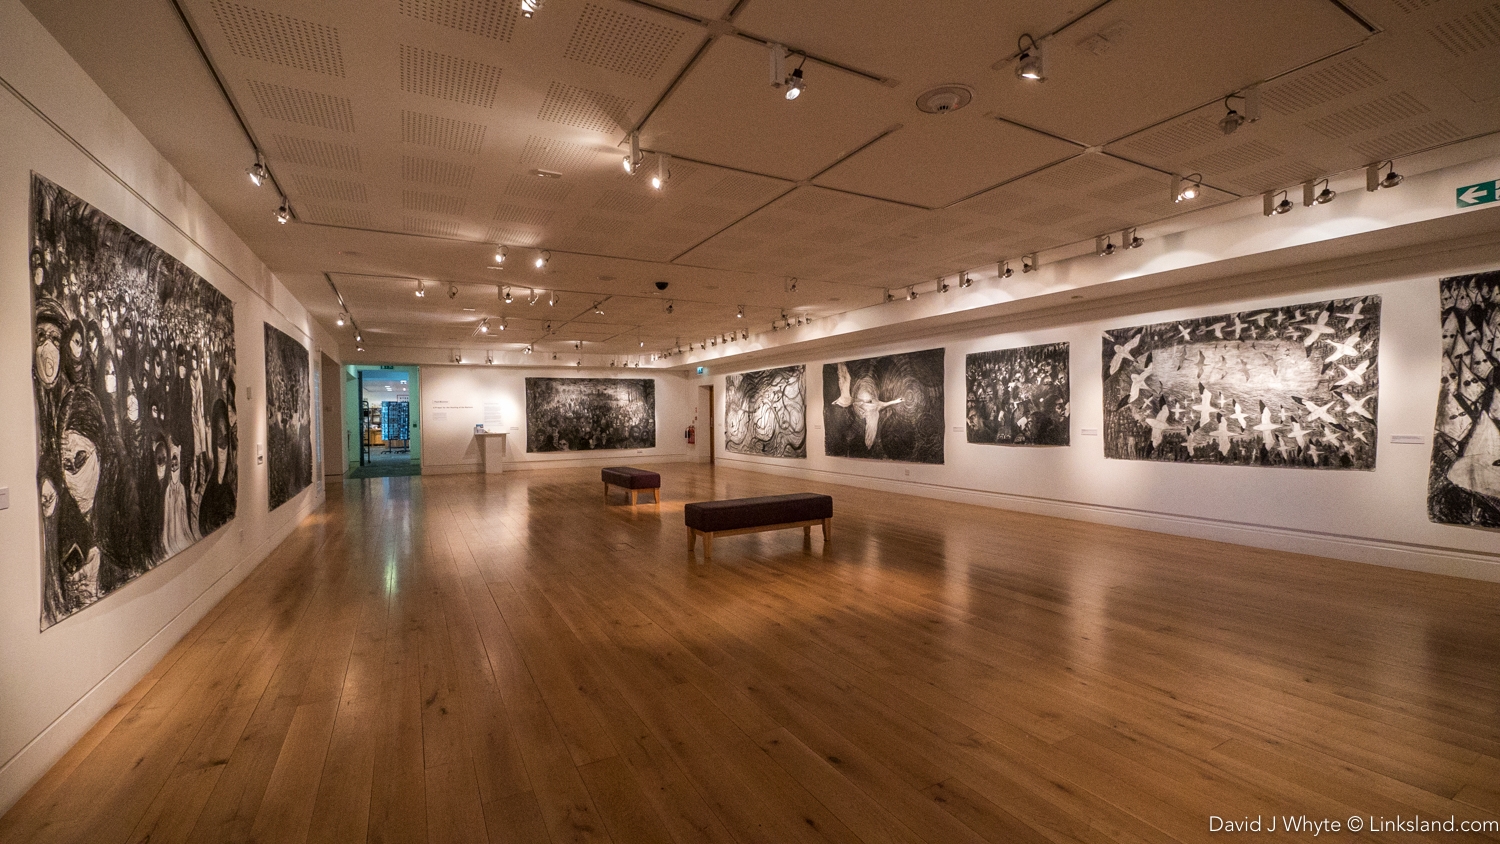 Shetland Museum has a facility capable of exhibiting high profile, exiting shows